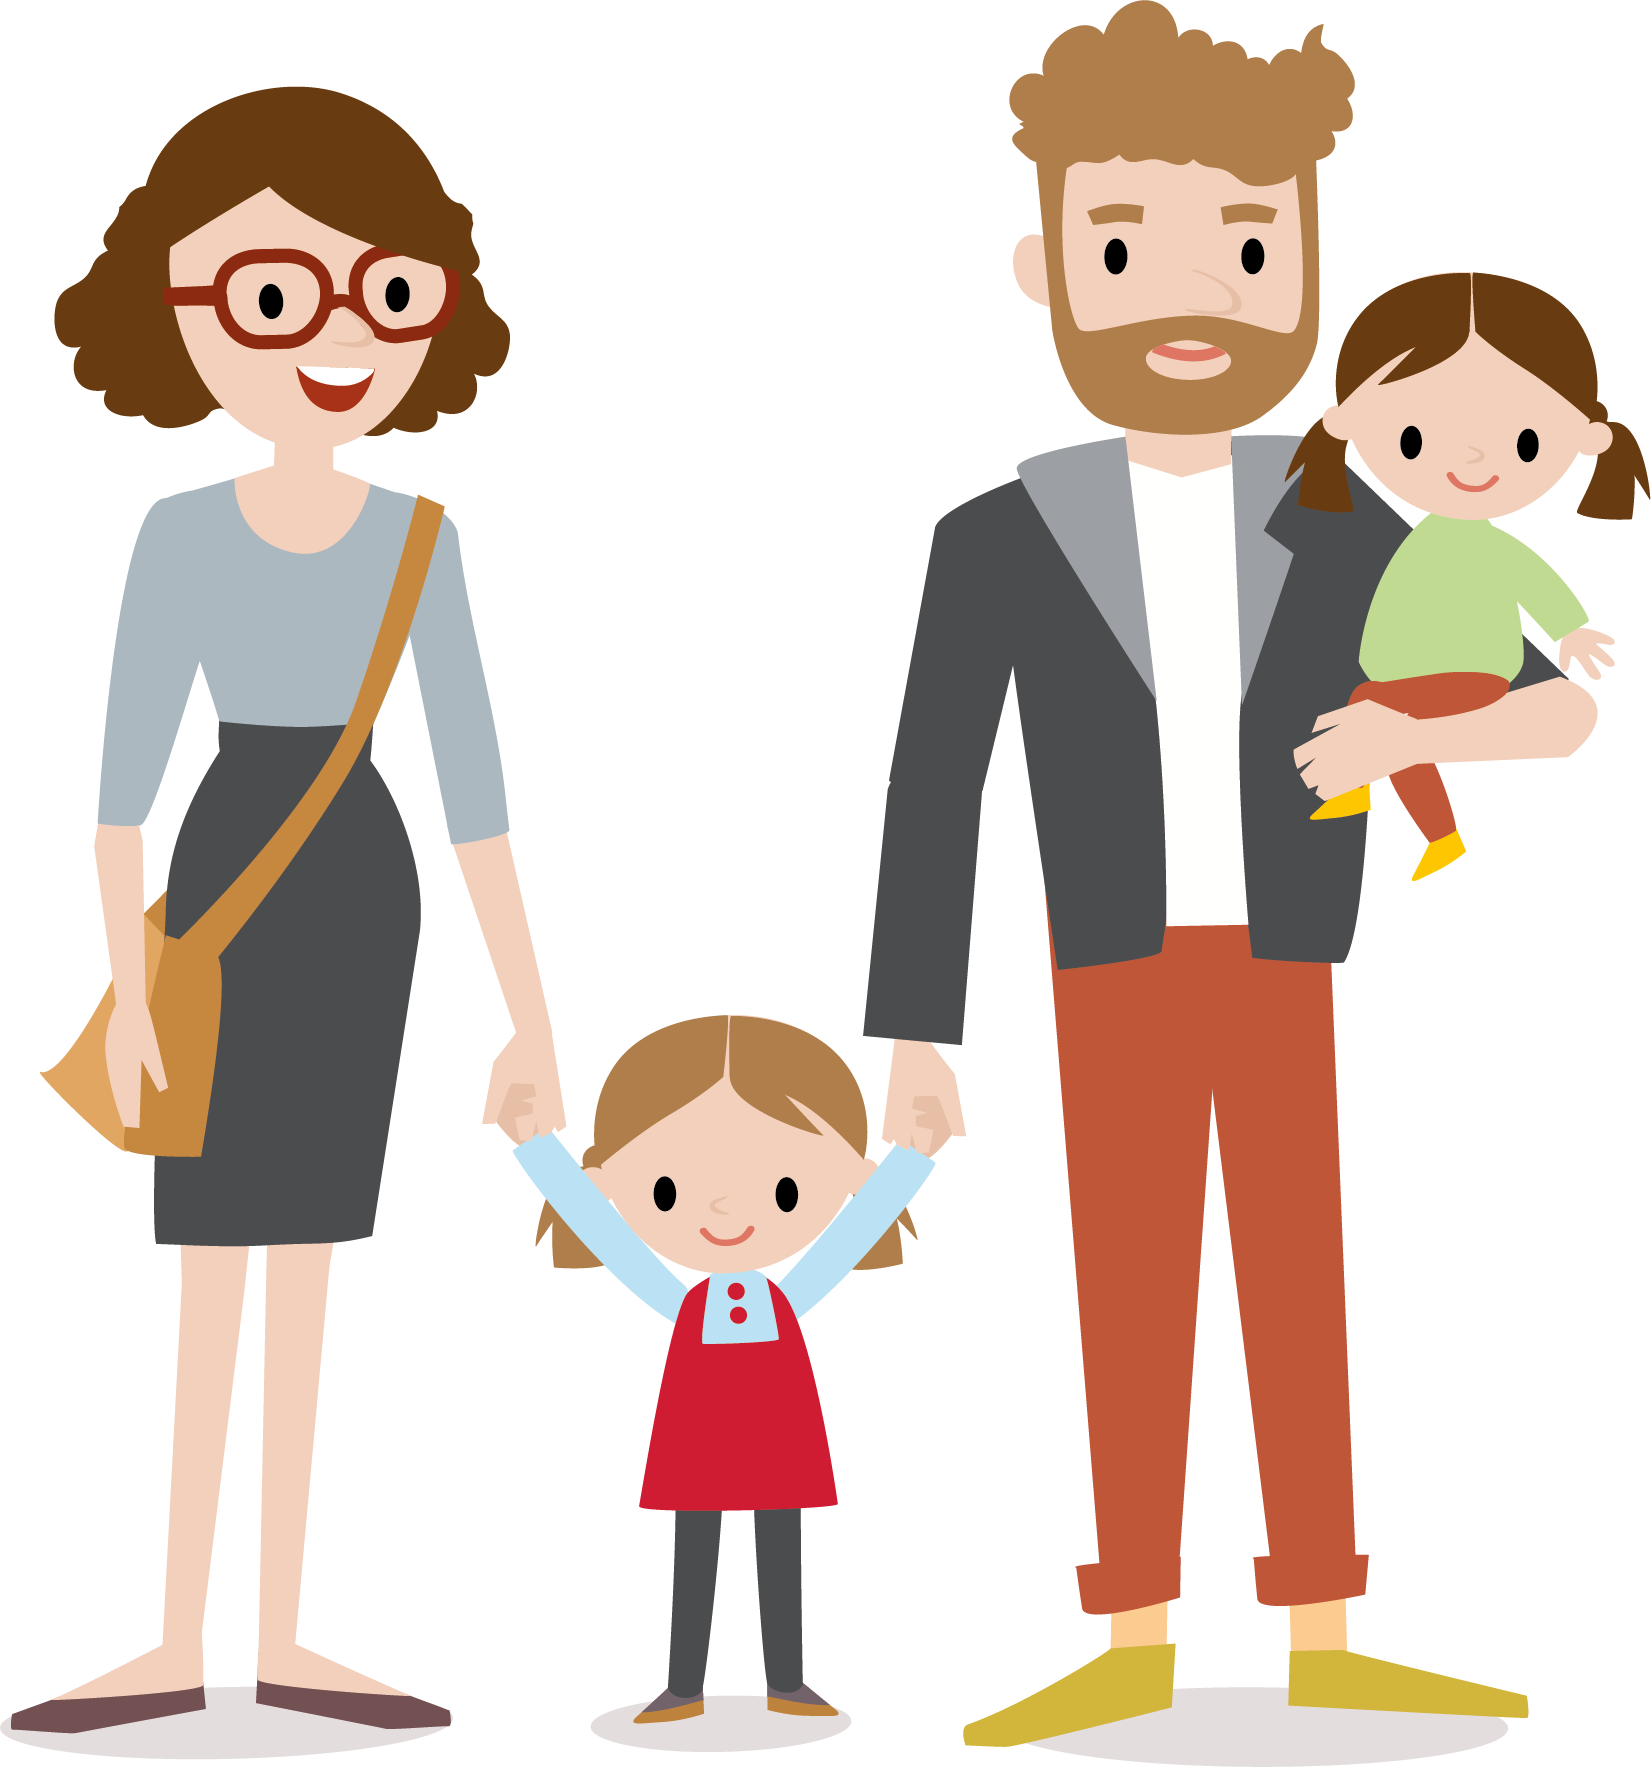 Parents school clipart png black and white download 28+ Collection of School Parents Clipart | High quality, free ... png black and white download